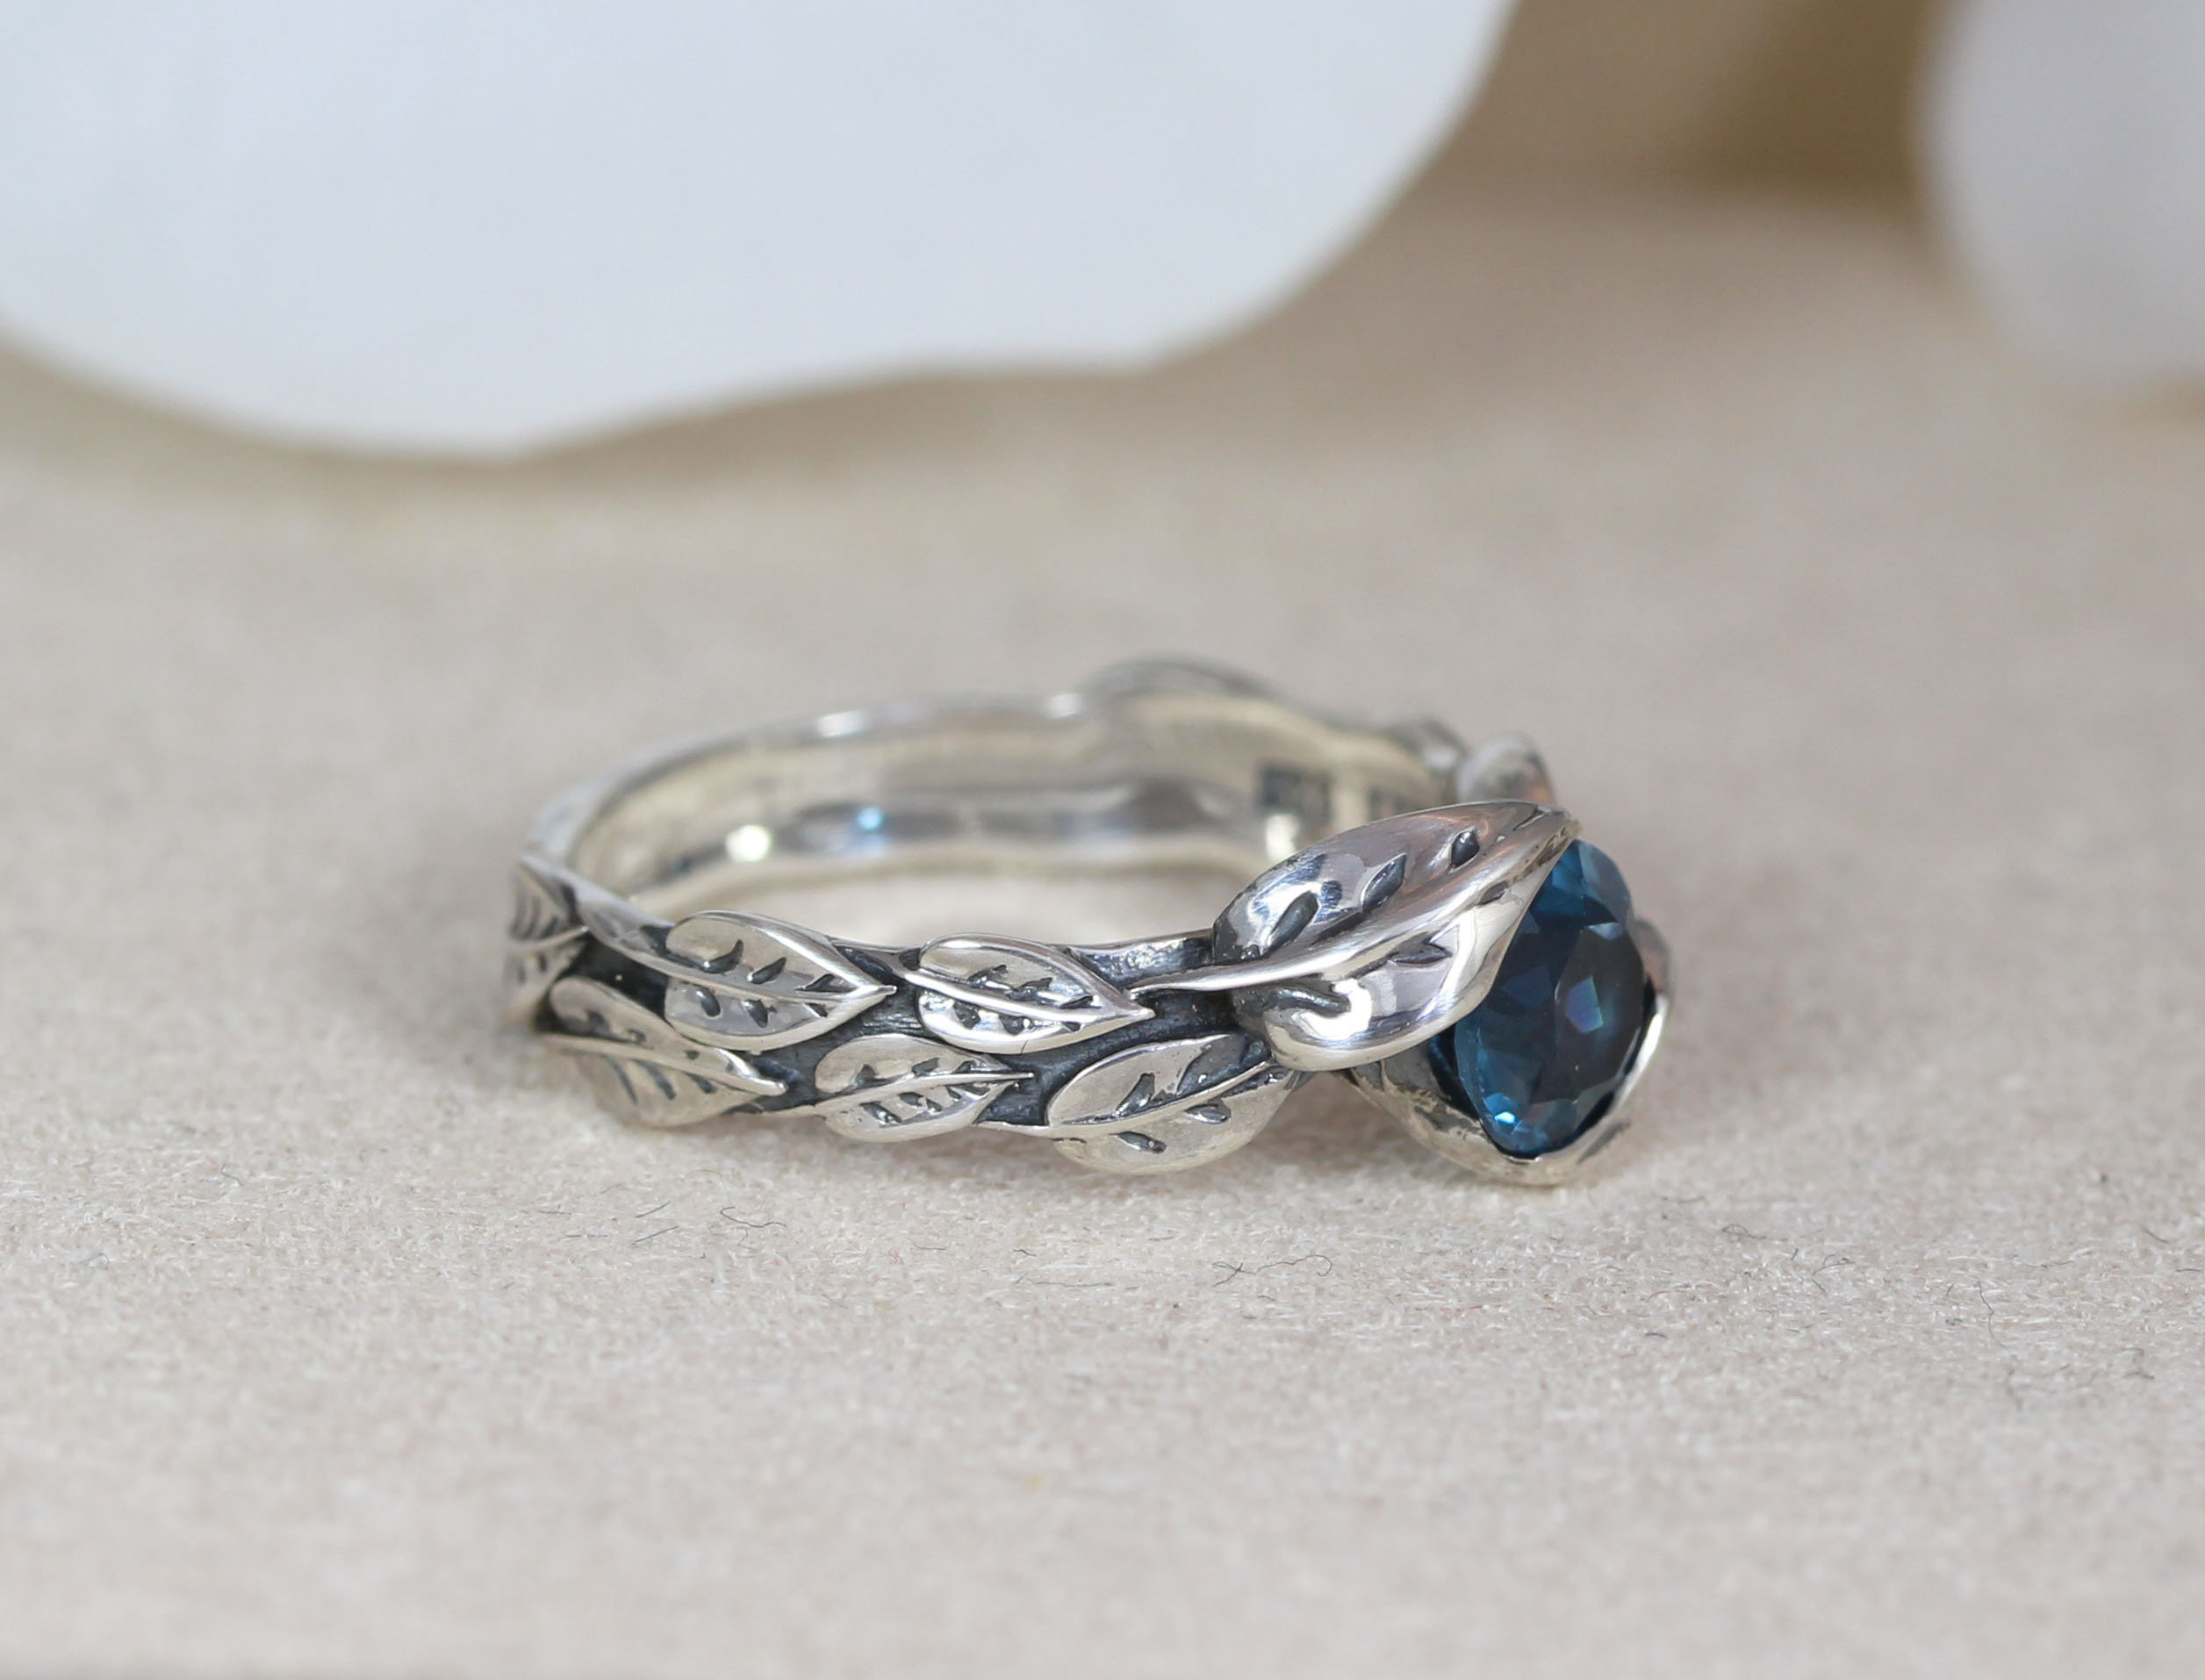 Sterling Silver Ring Leaf Ring Blue Topaz Tree of Life Ring Art 18K Gold Plated Forest Branch Leaf Statement Rings Leaf Engagement Ring